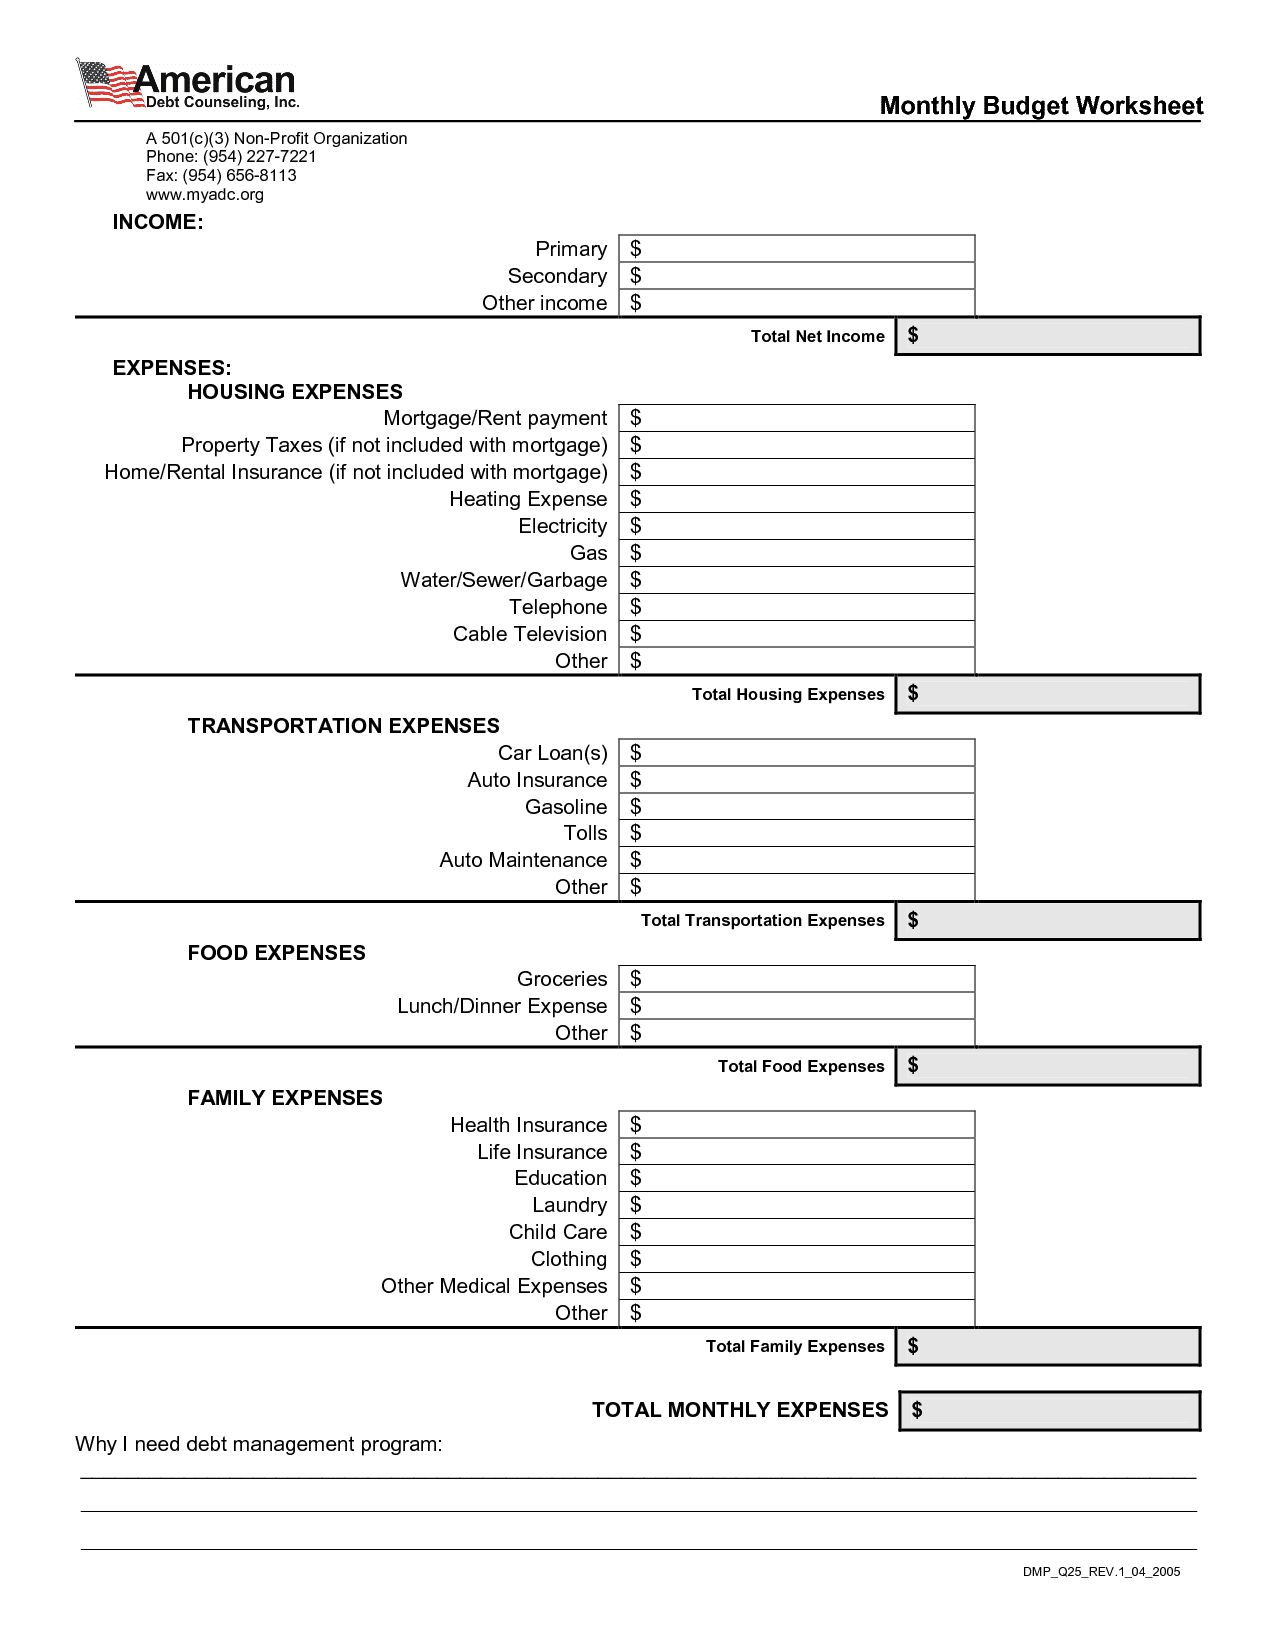 Funeral Budget Sheet And Plan Your Own Funeral Worksheets